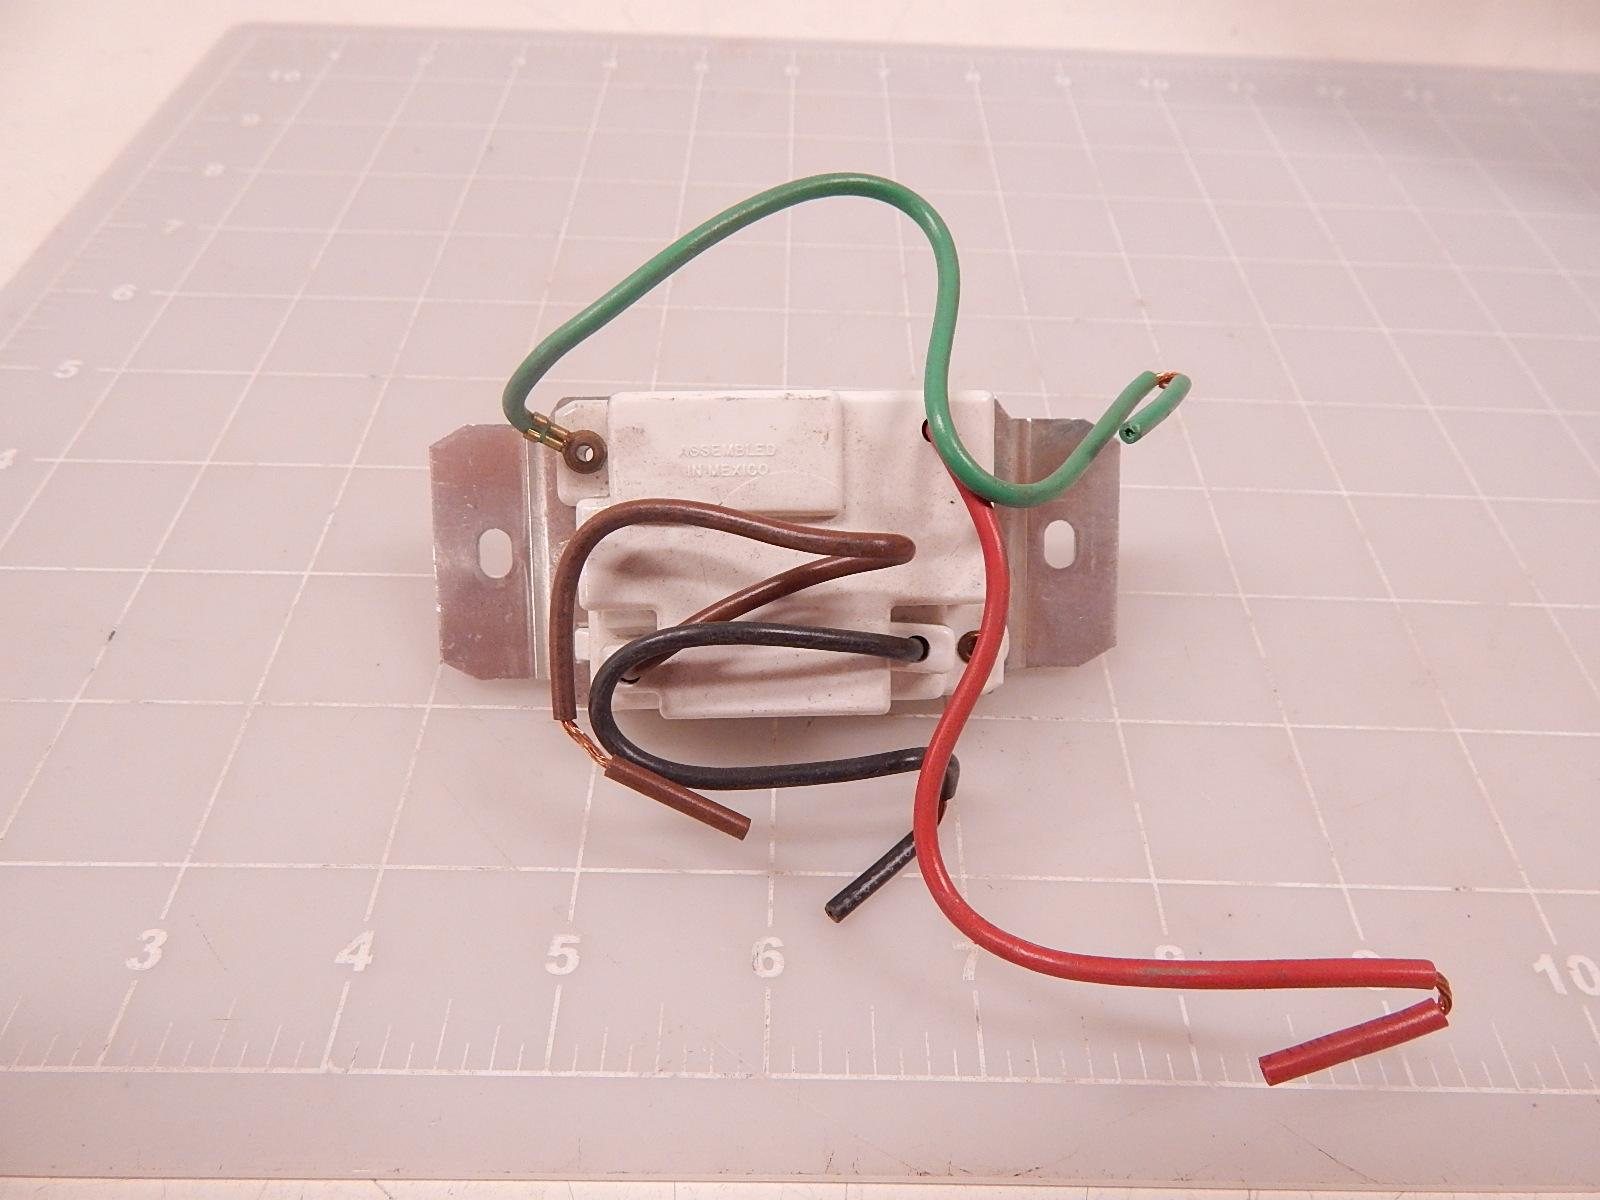 wiring diagram for leviton 3 way dimmer the wiring diagram leviton 6842 dimmer wiring diagram nodasystech wiring diagram